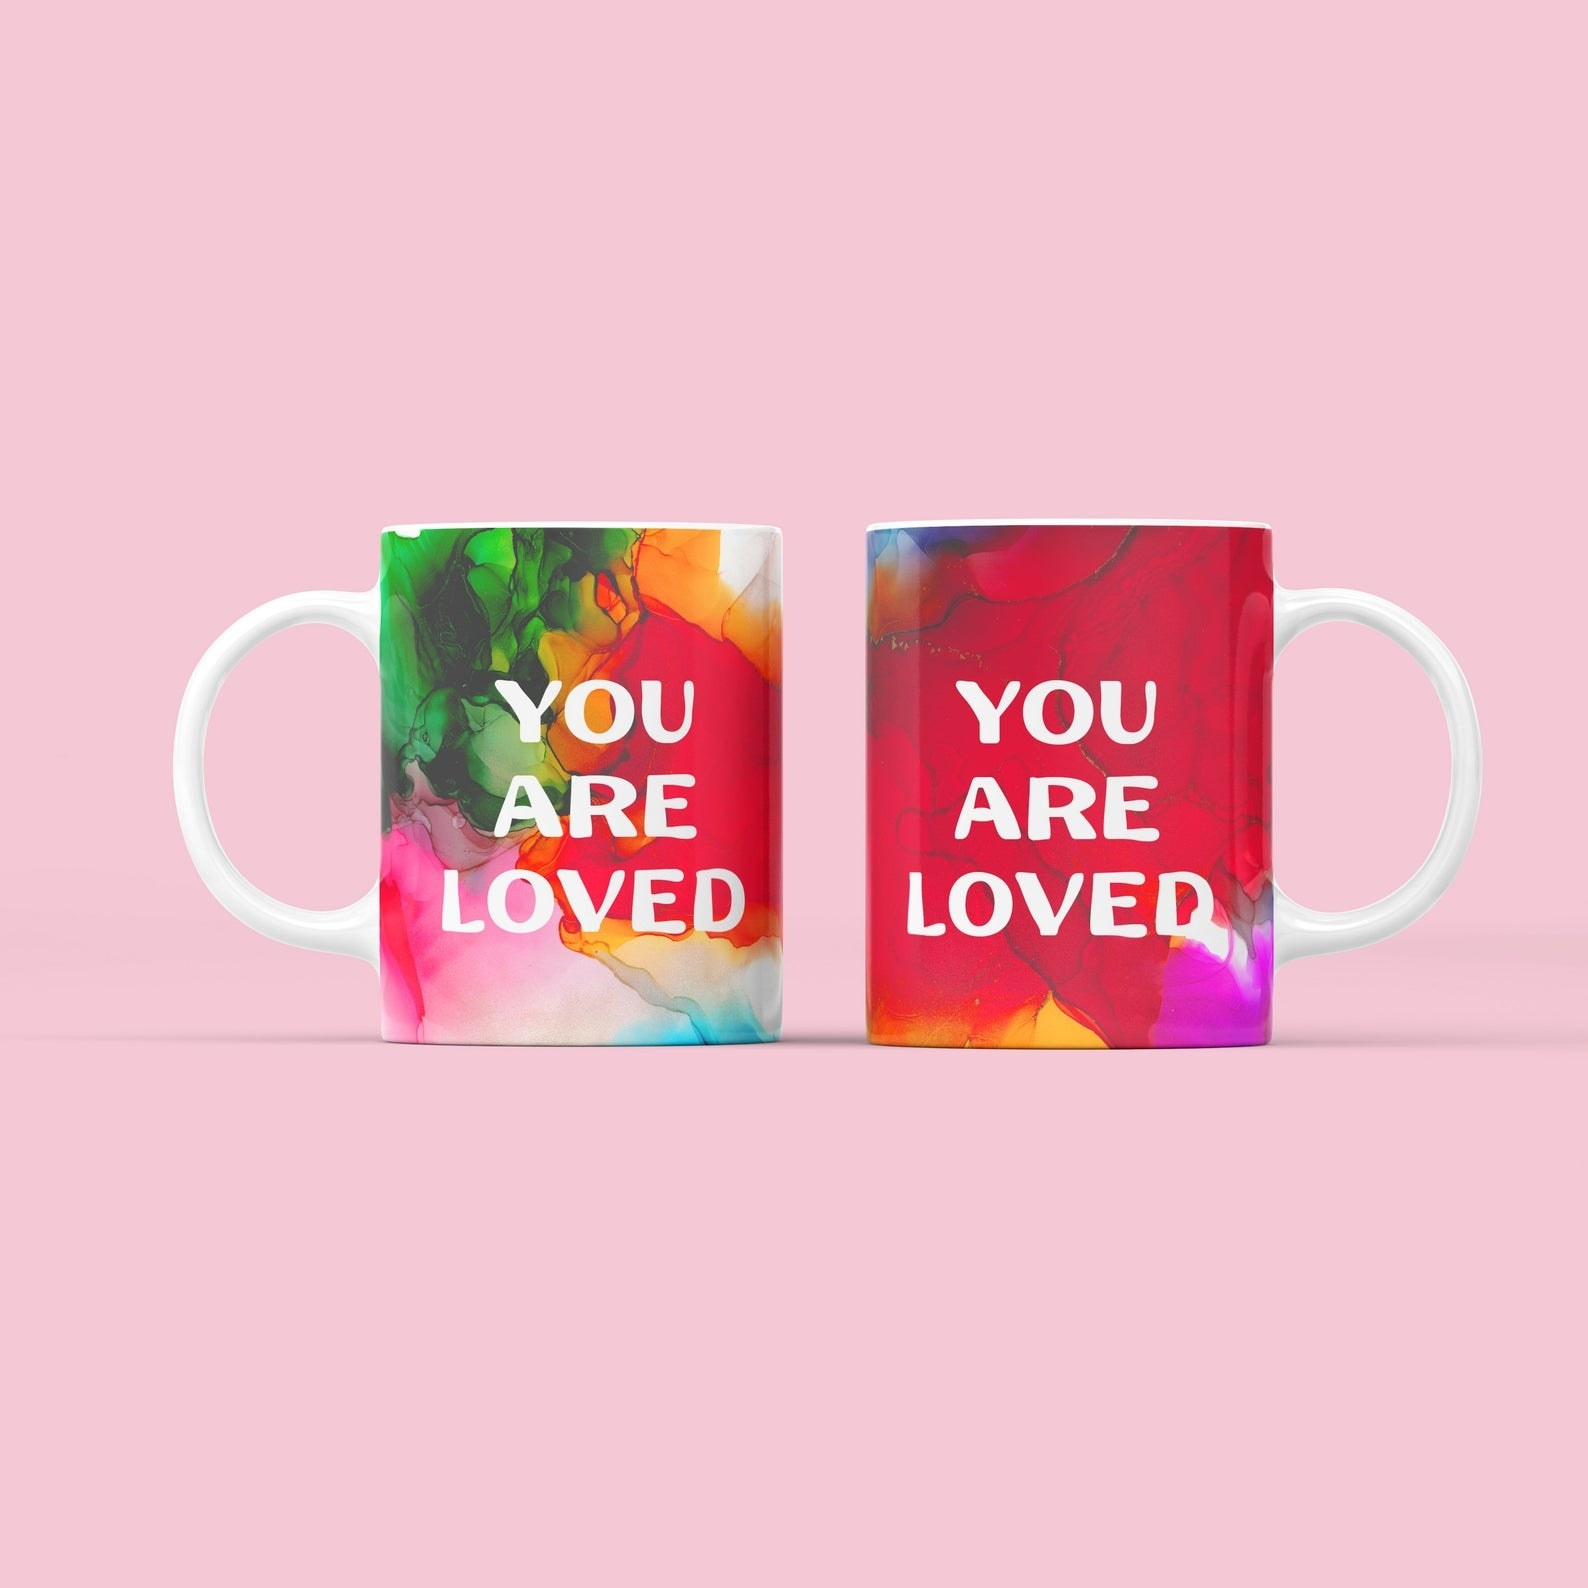 """a mug with a watercolor painting style with the words """"You are loved"""" in white on top"""